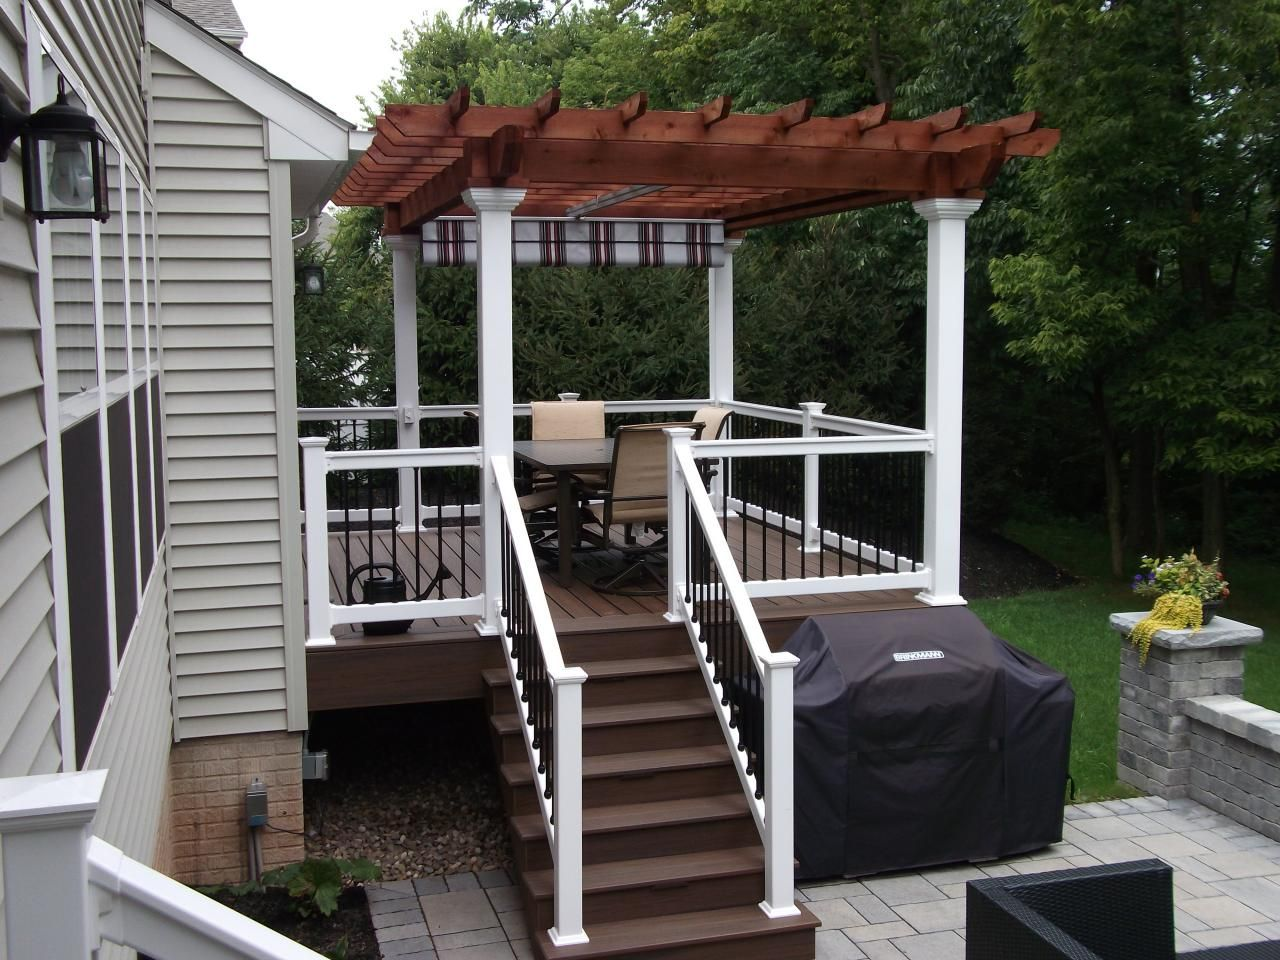 This Structure Can Add Both Shade And Class To An Otherwise Lifeless Deck!  Ready To Transform Your Outdoor ...